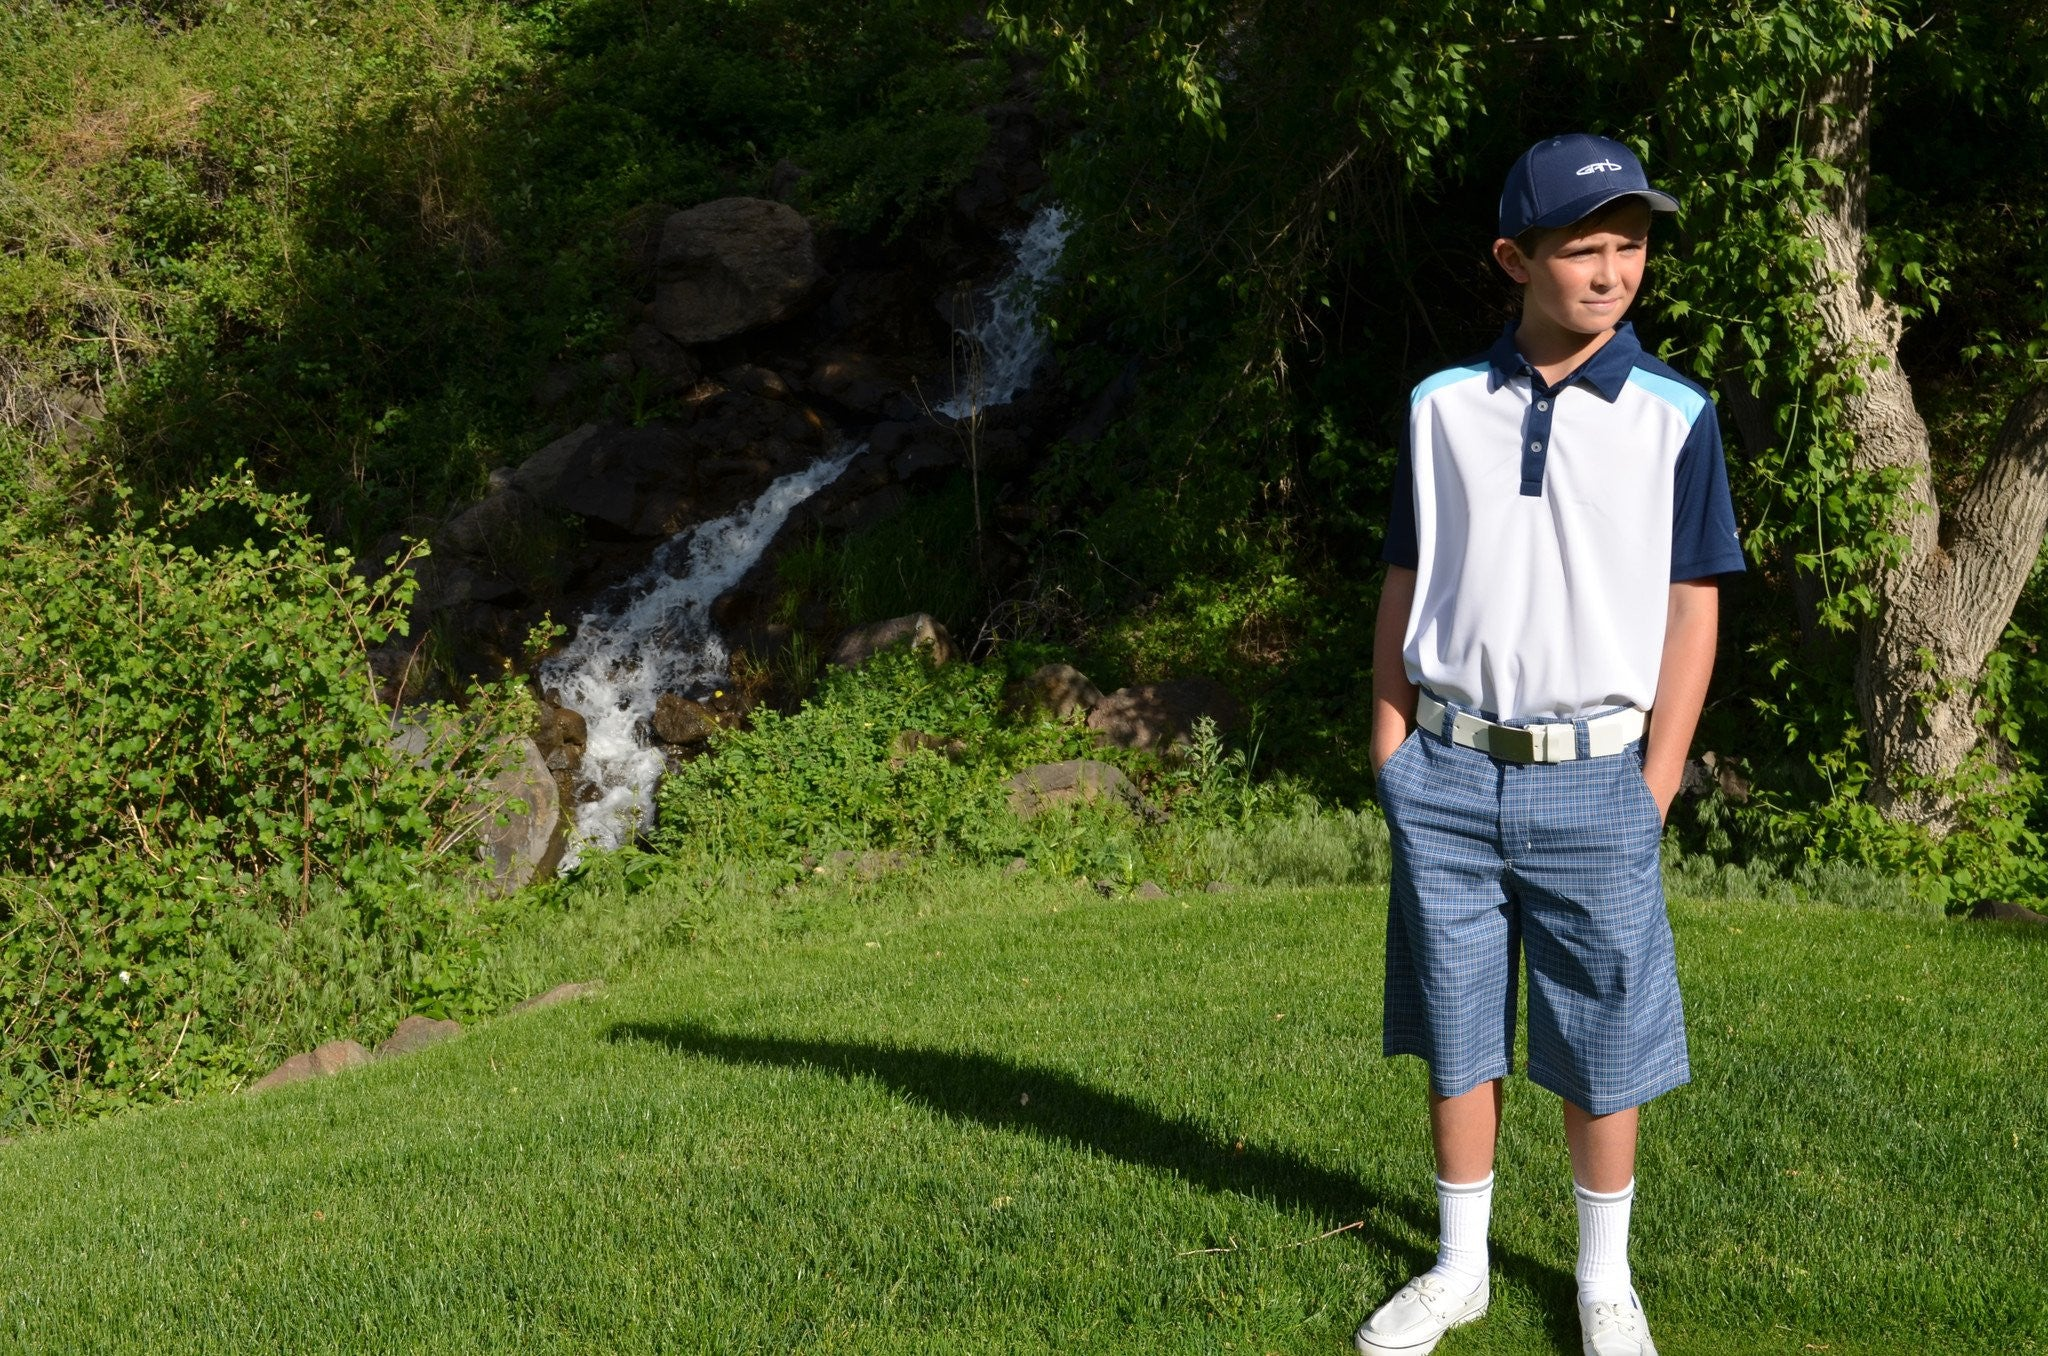 Junior golfer wearing the Garb hybrid golf shorts